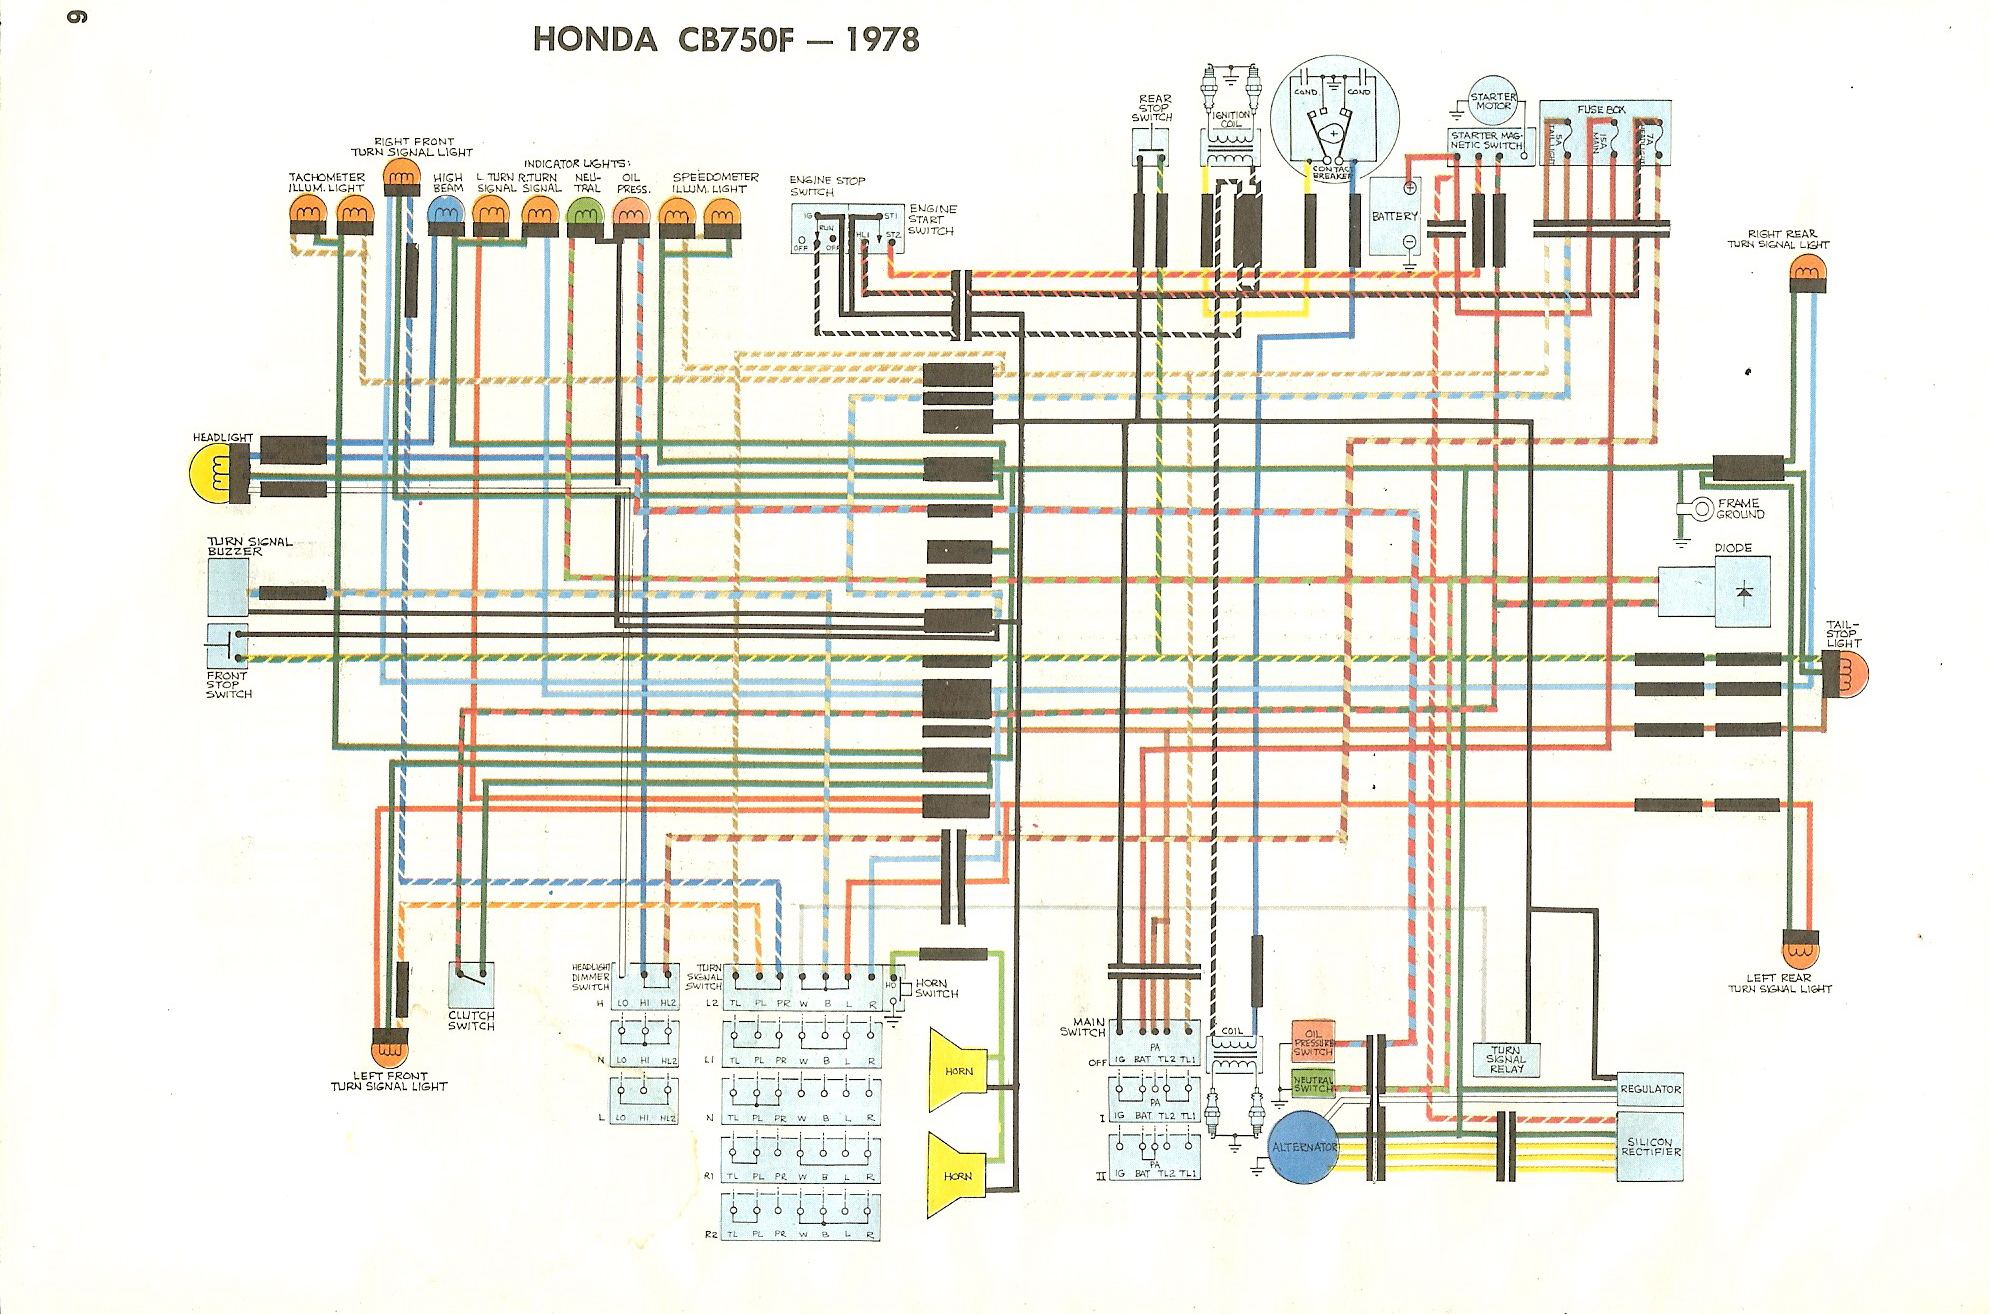 WD750F_78 cb750f 1976 cb550f wiring diagram at webbmarketing.co